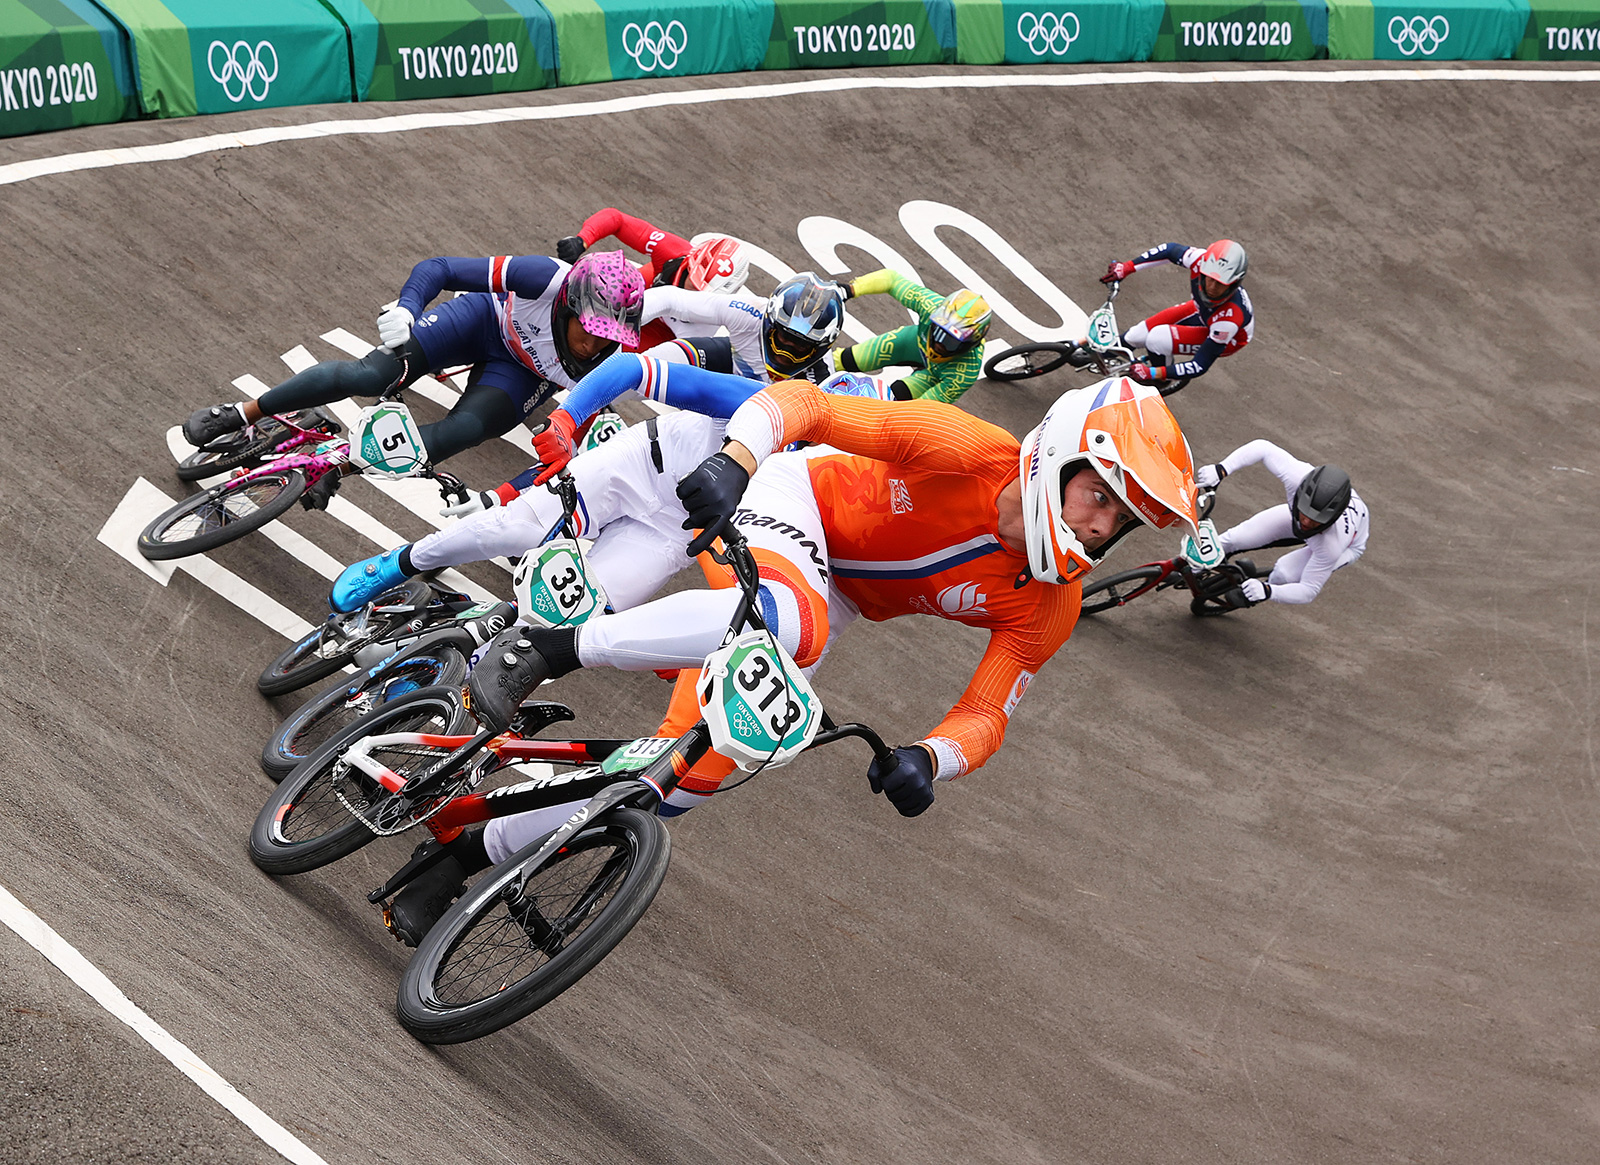 Kye Whyte of Team Great Britain competes in the BMX semifinals on Friday.